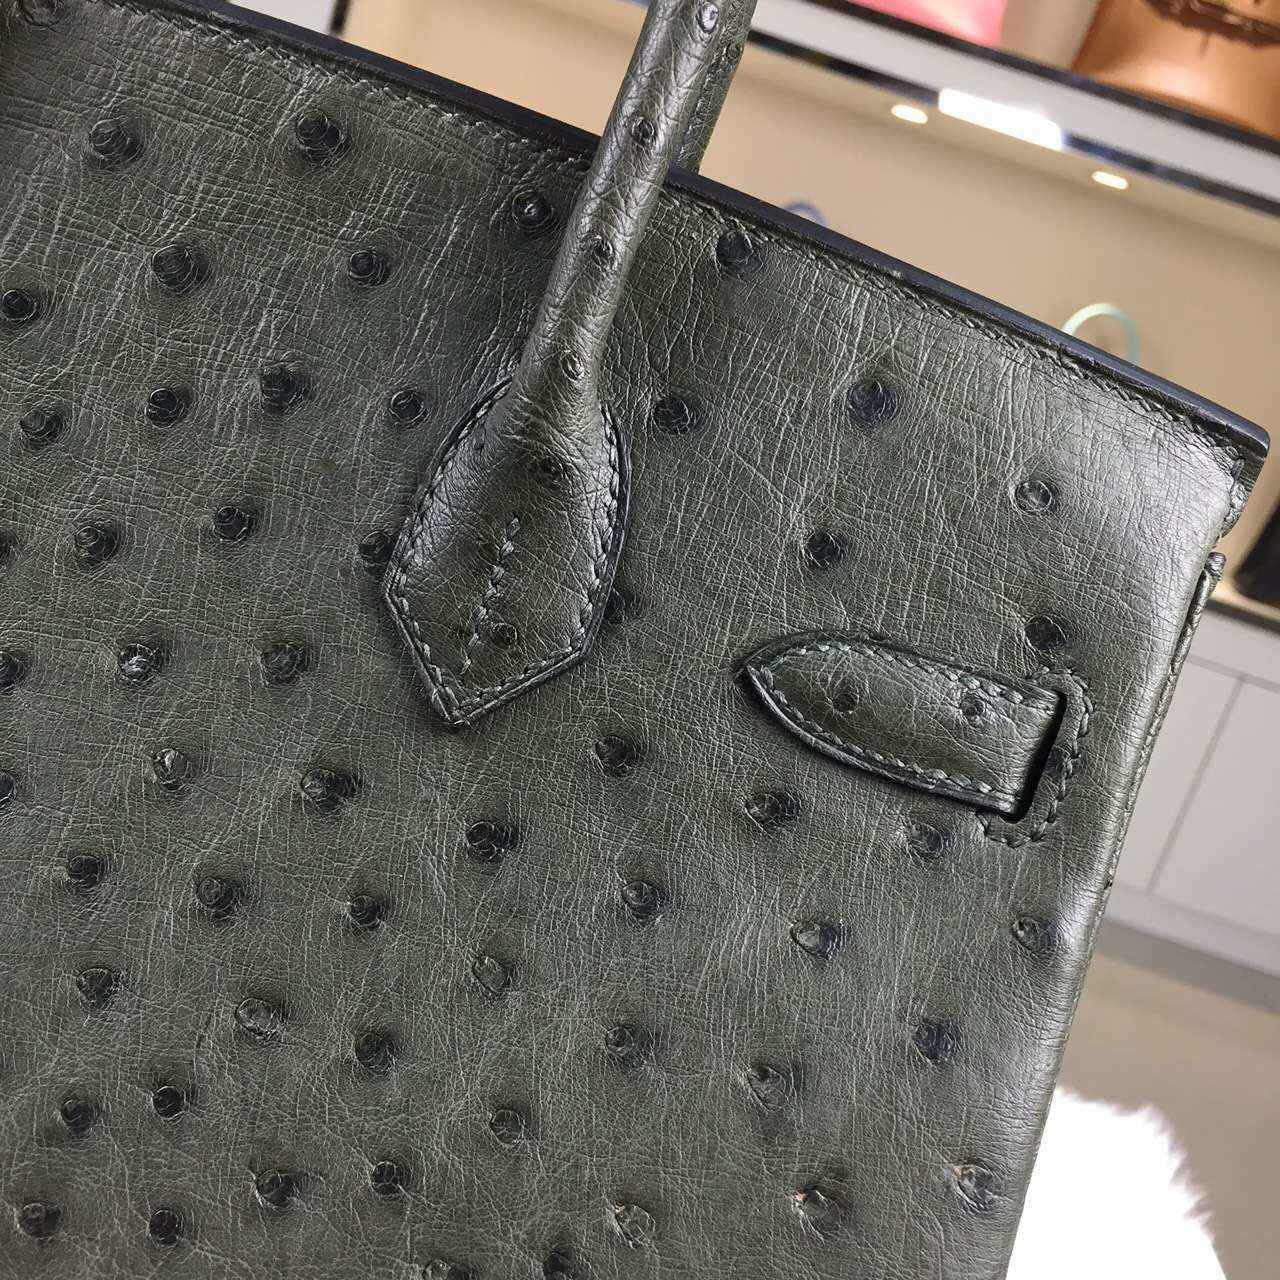 Discount Hermes HCP Original Ostrich Leather Birkin Bag 30CM in Canopee Green